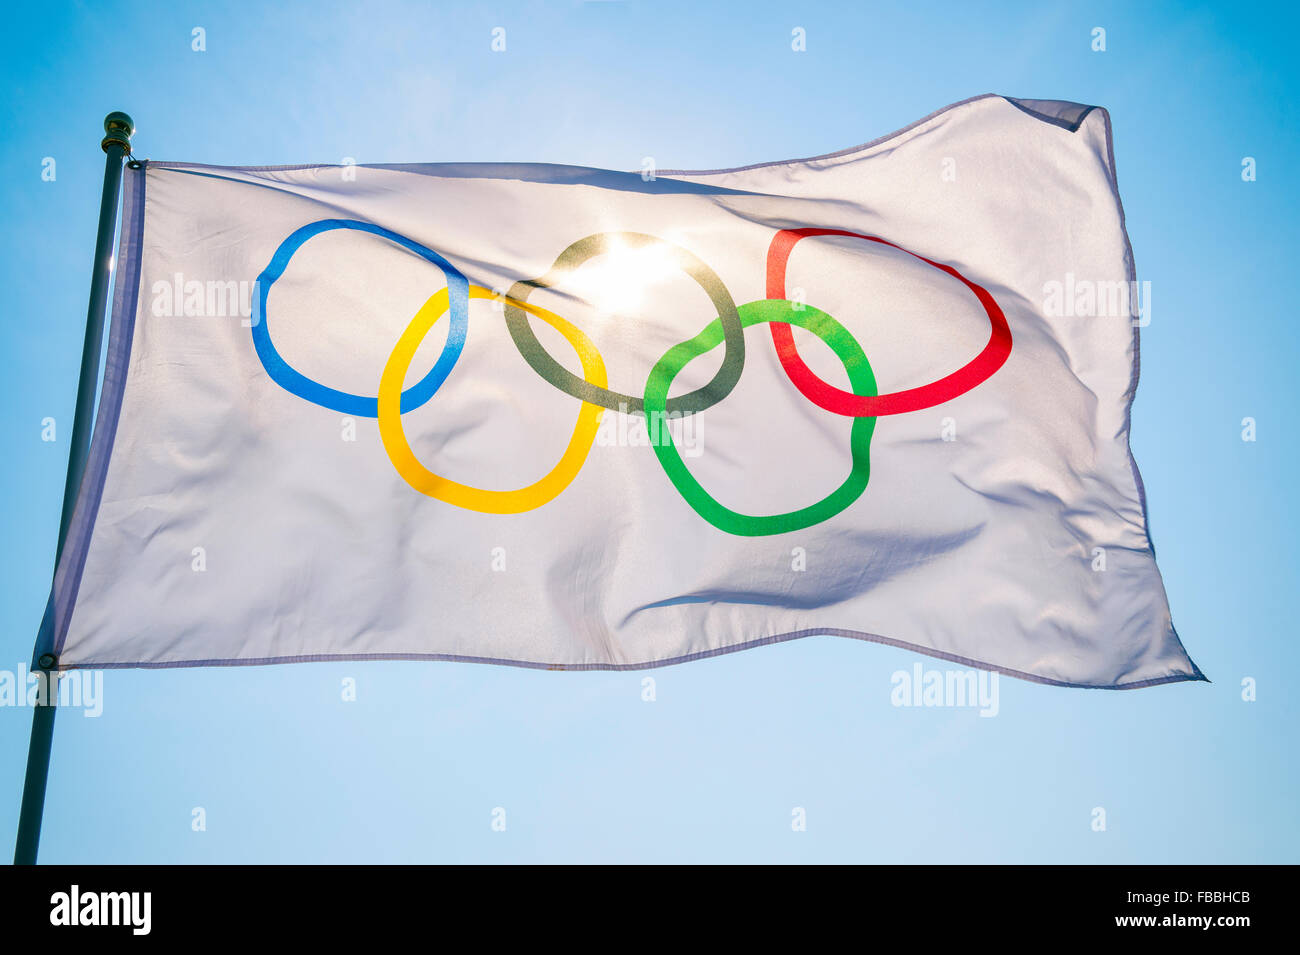 RIO DE JANEIRO, BRAZIL - FEBRUARY 12, 2015: An Olympic flag flutters in the wind backlit against bright blue sky. - Stock Image